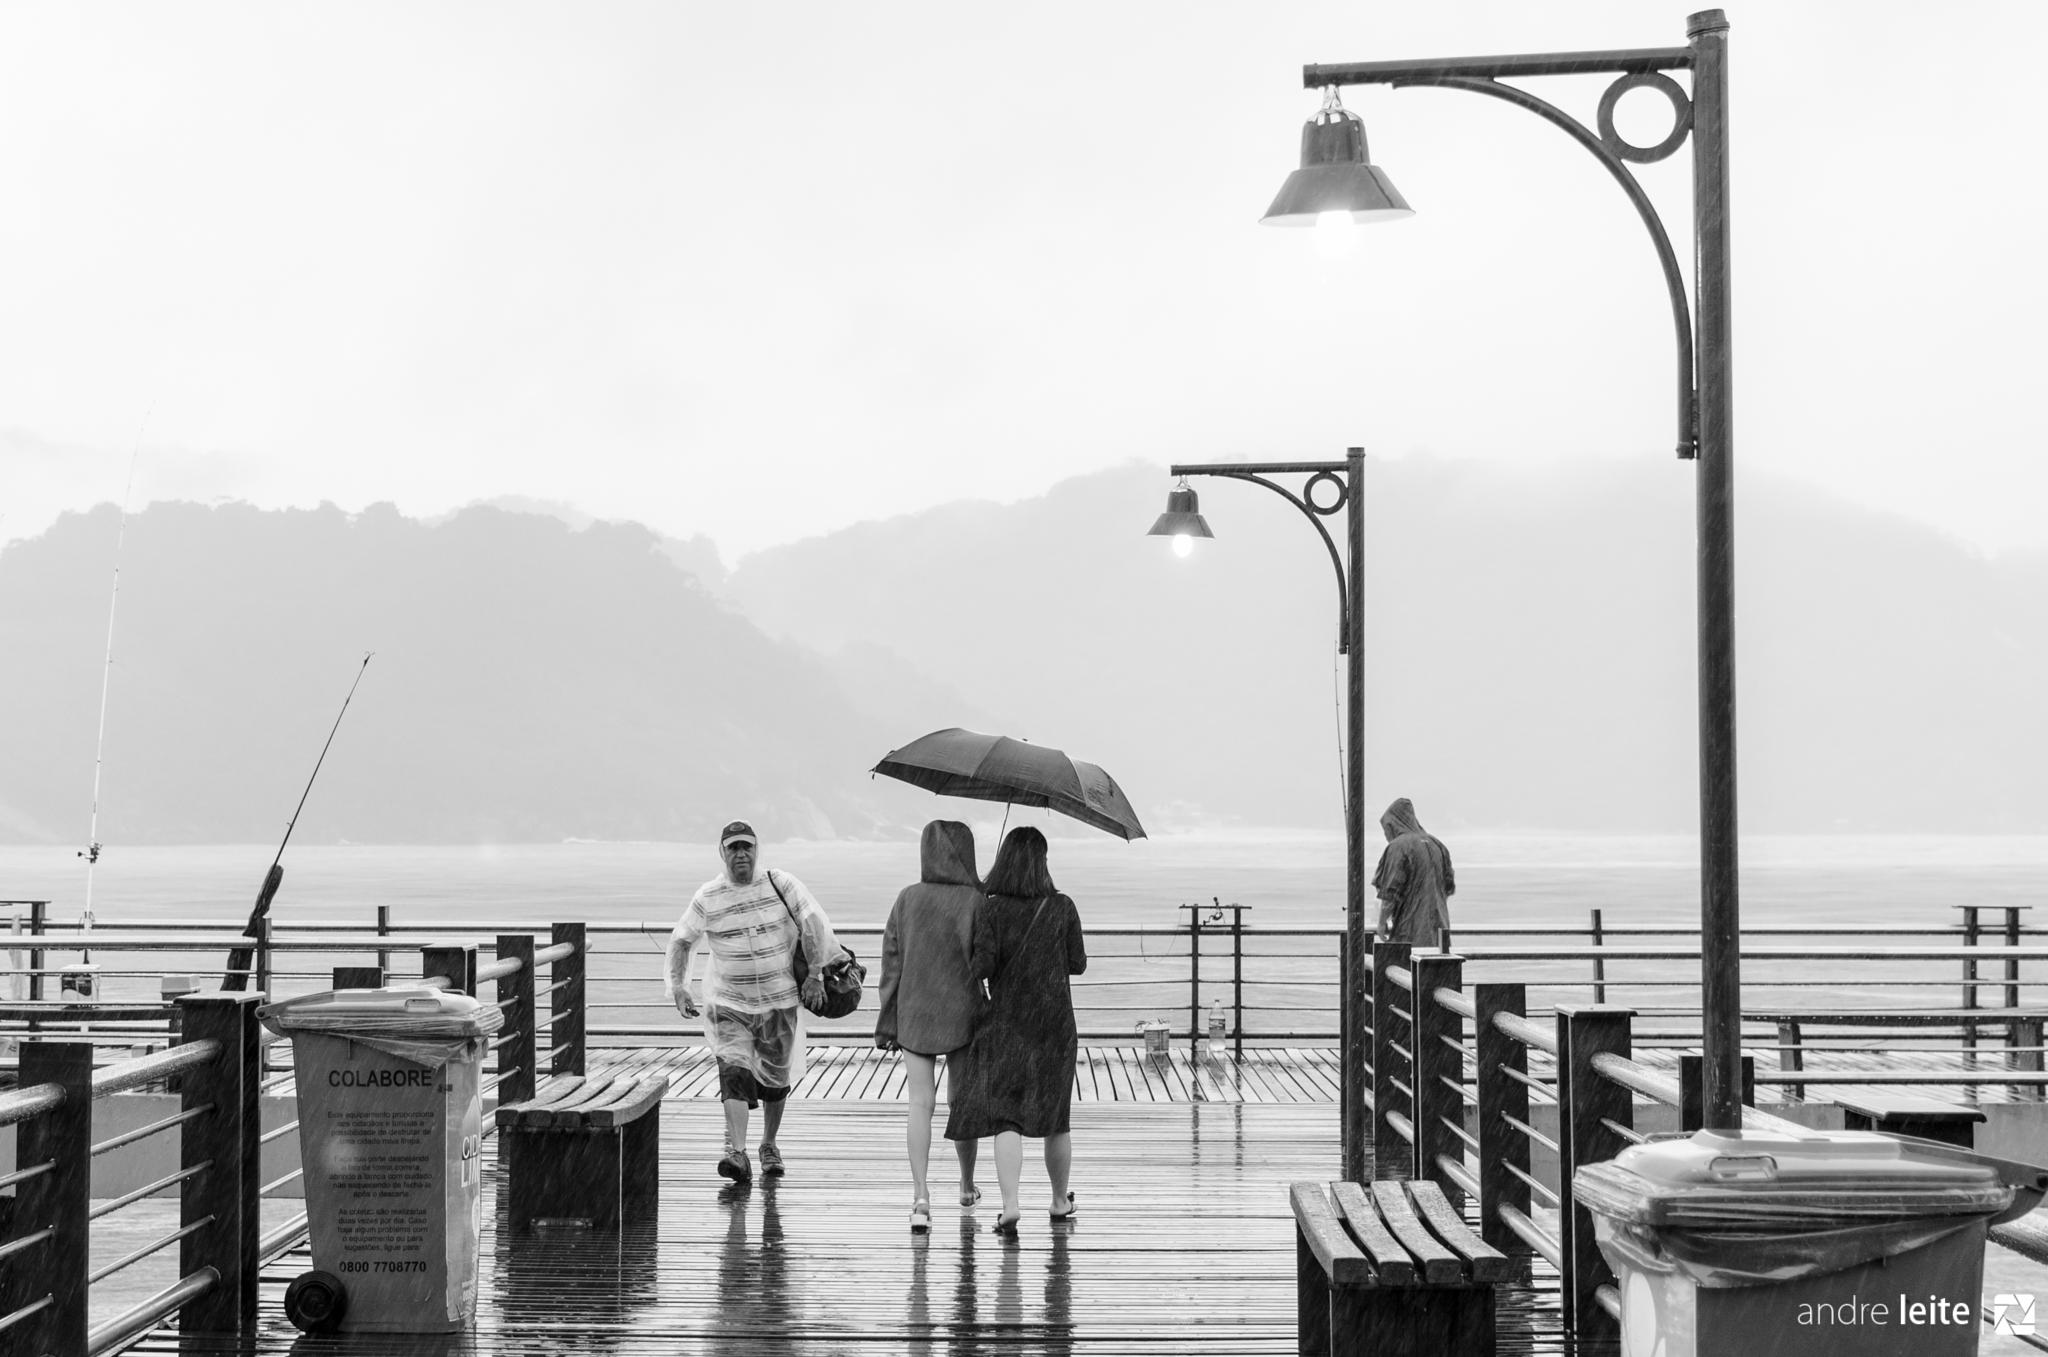 Girls and Umbrella by André Leite